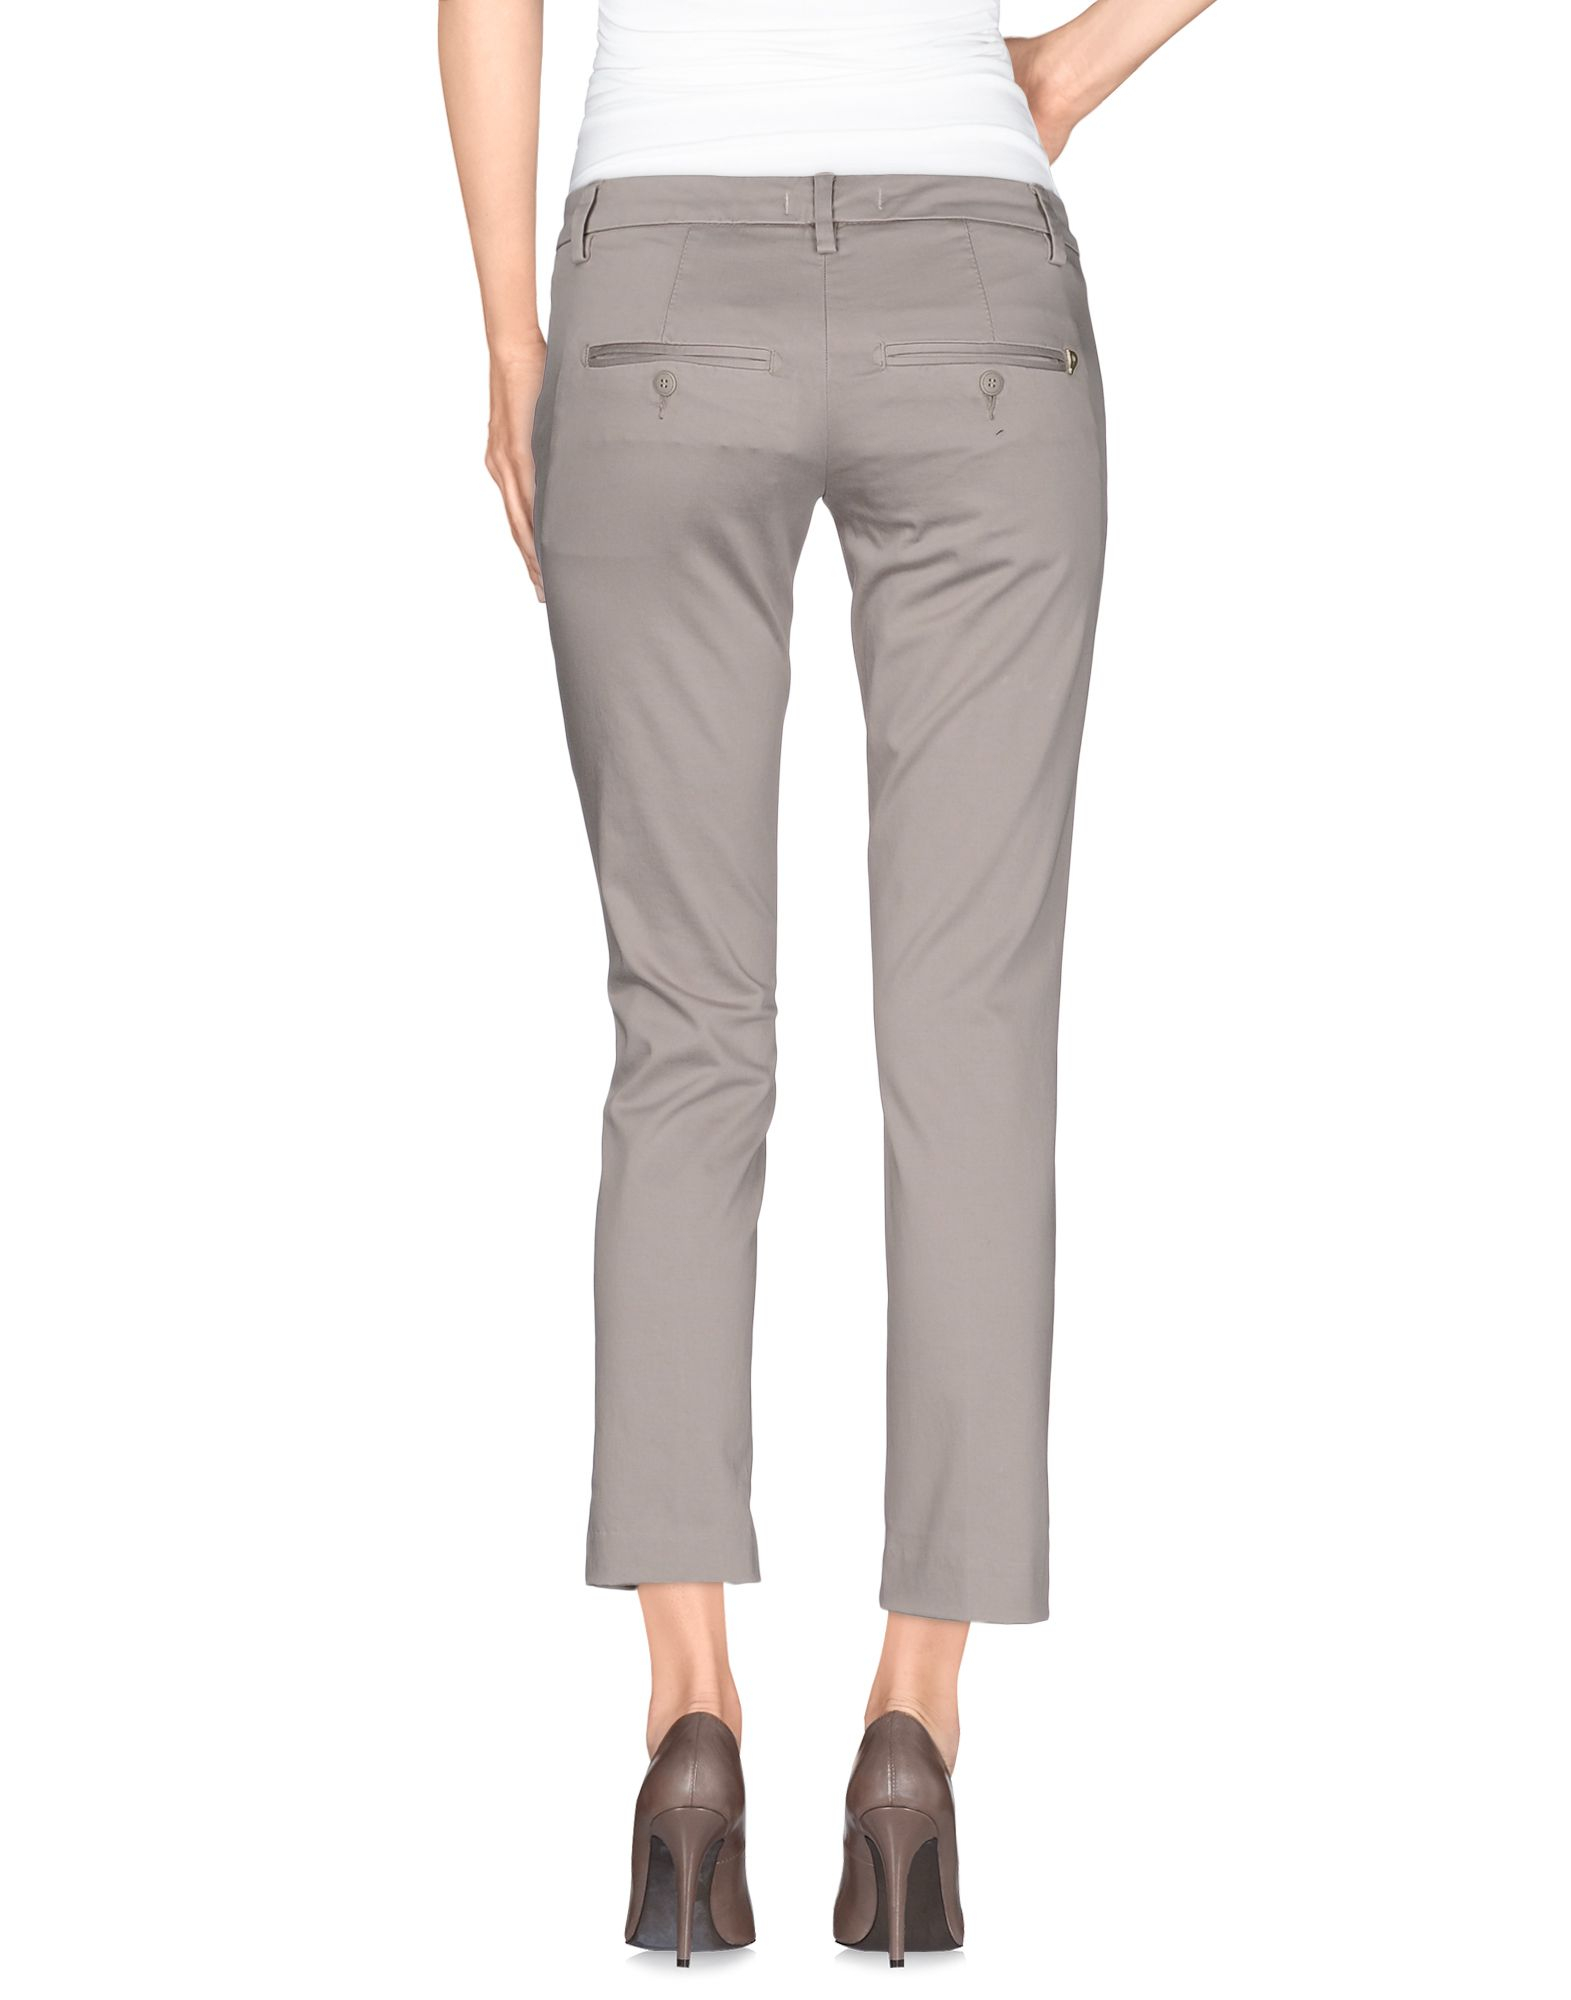 Luxury SheIn Women Pants Trousers For Ladies New Style Plain Light Grey High